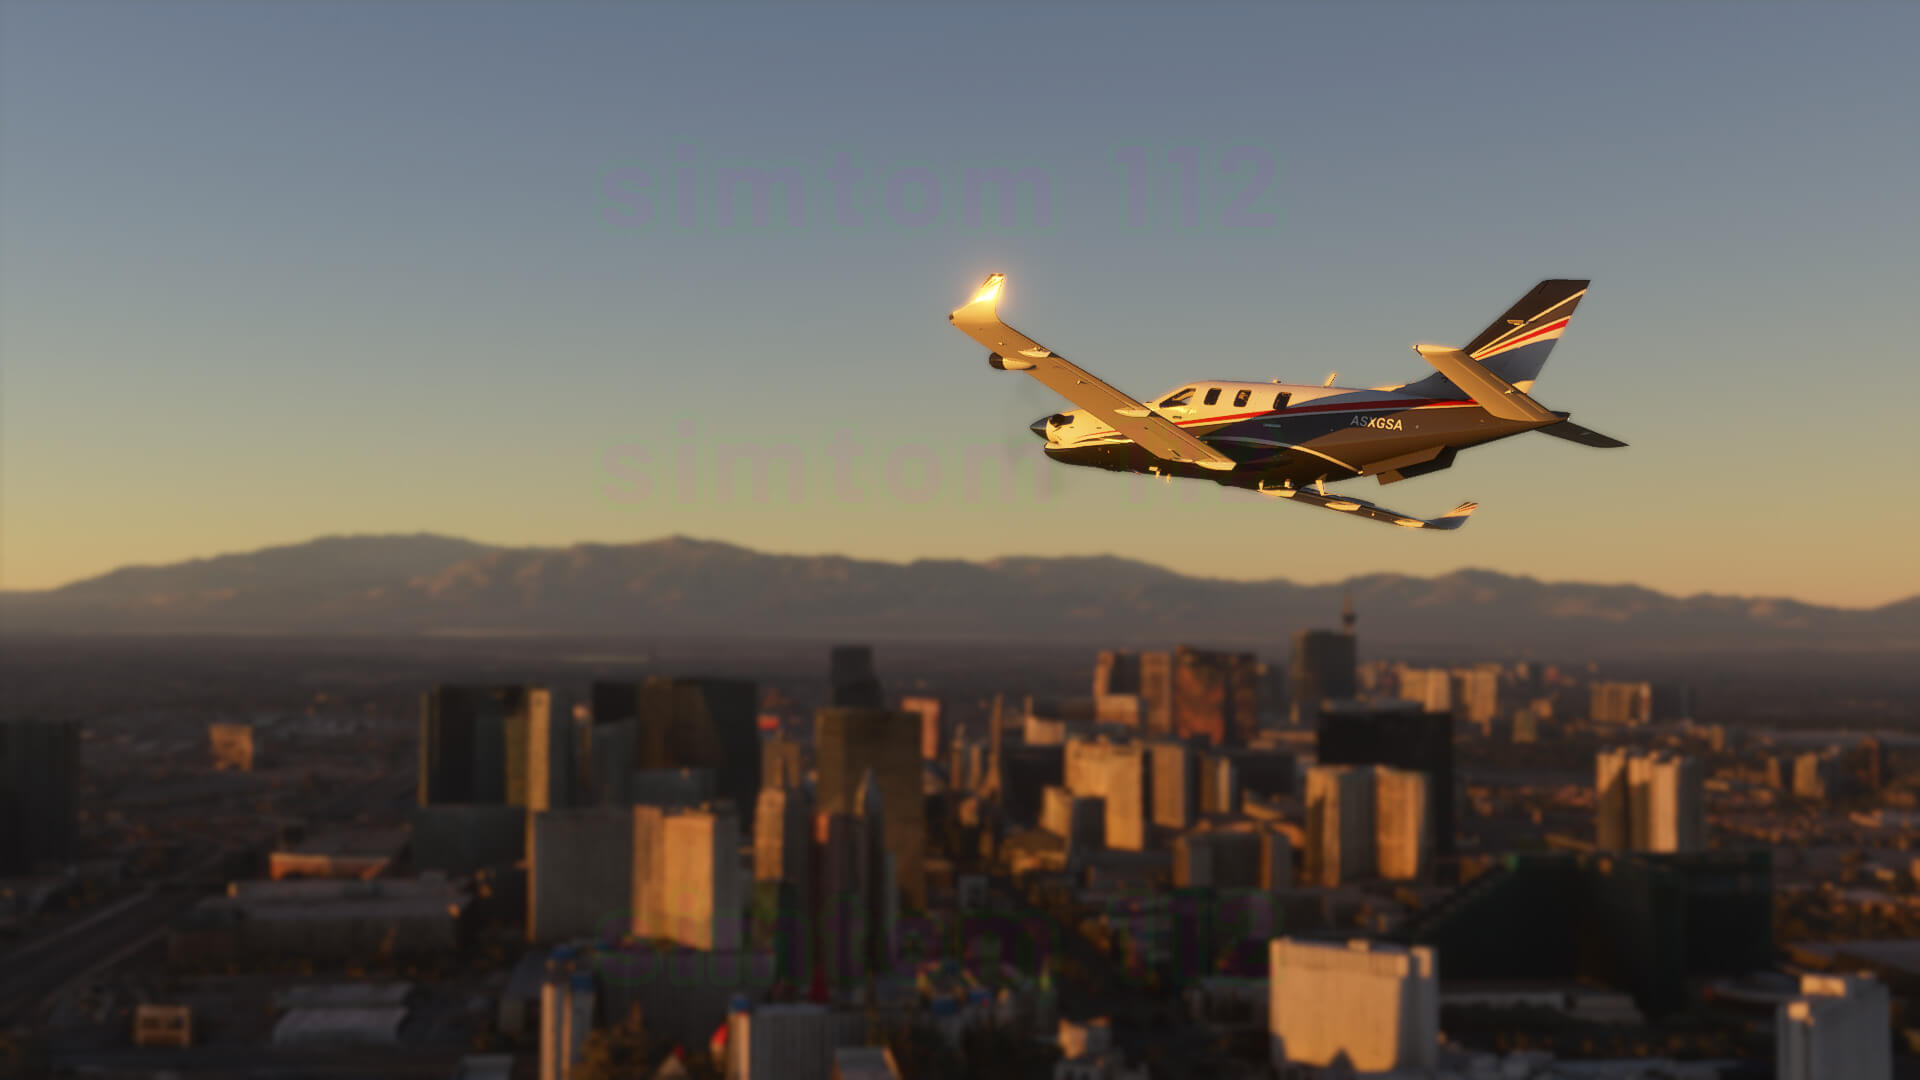 Microsoft Flight Simulator 2020 captura 9 detalle de la avioneta